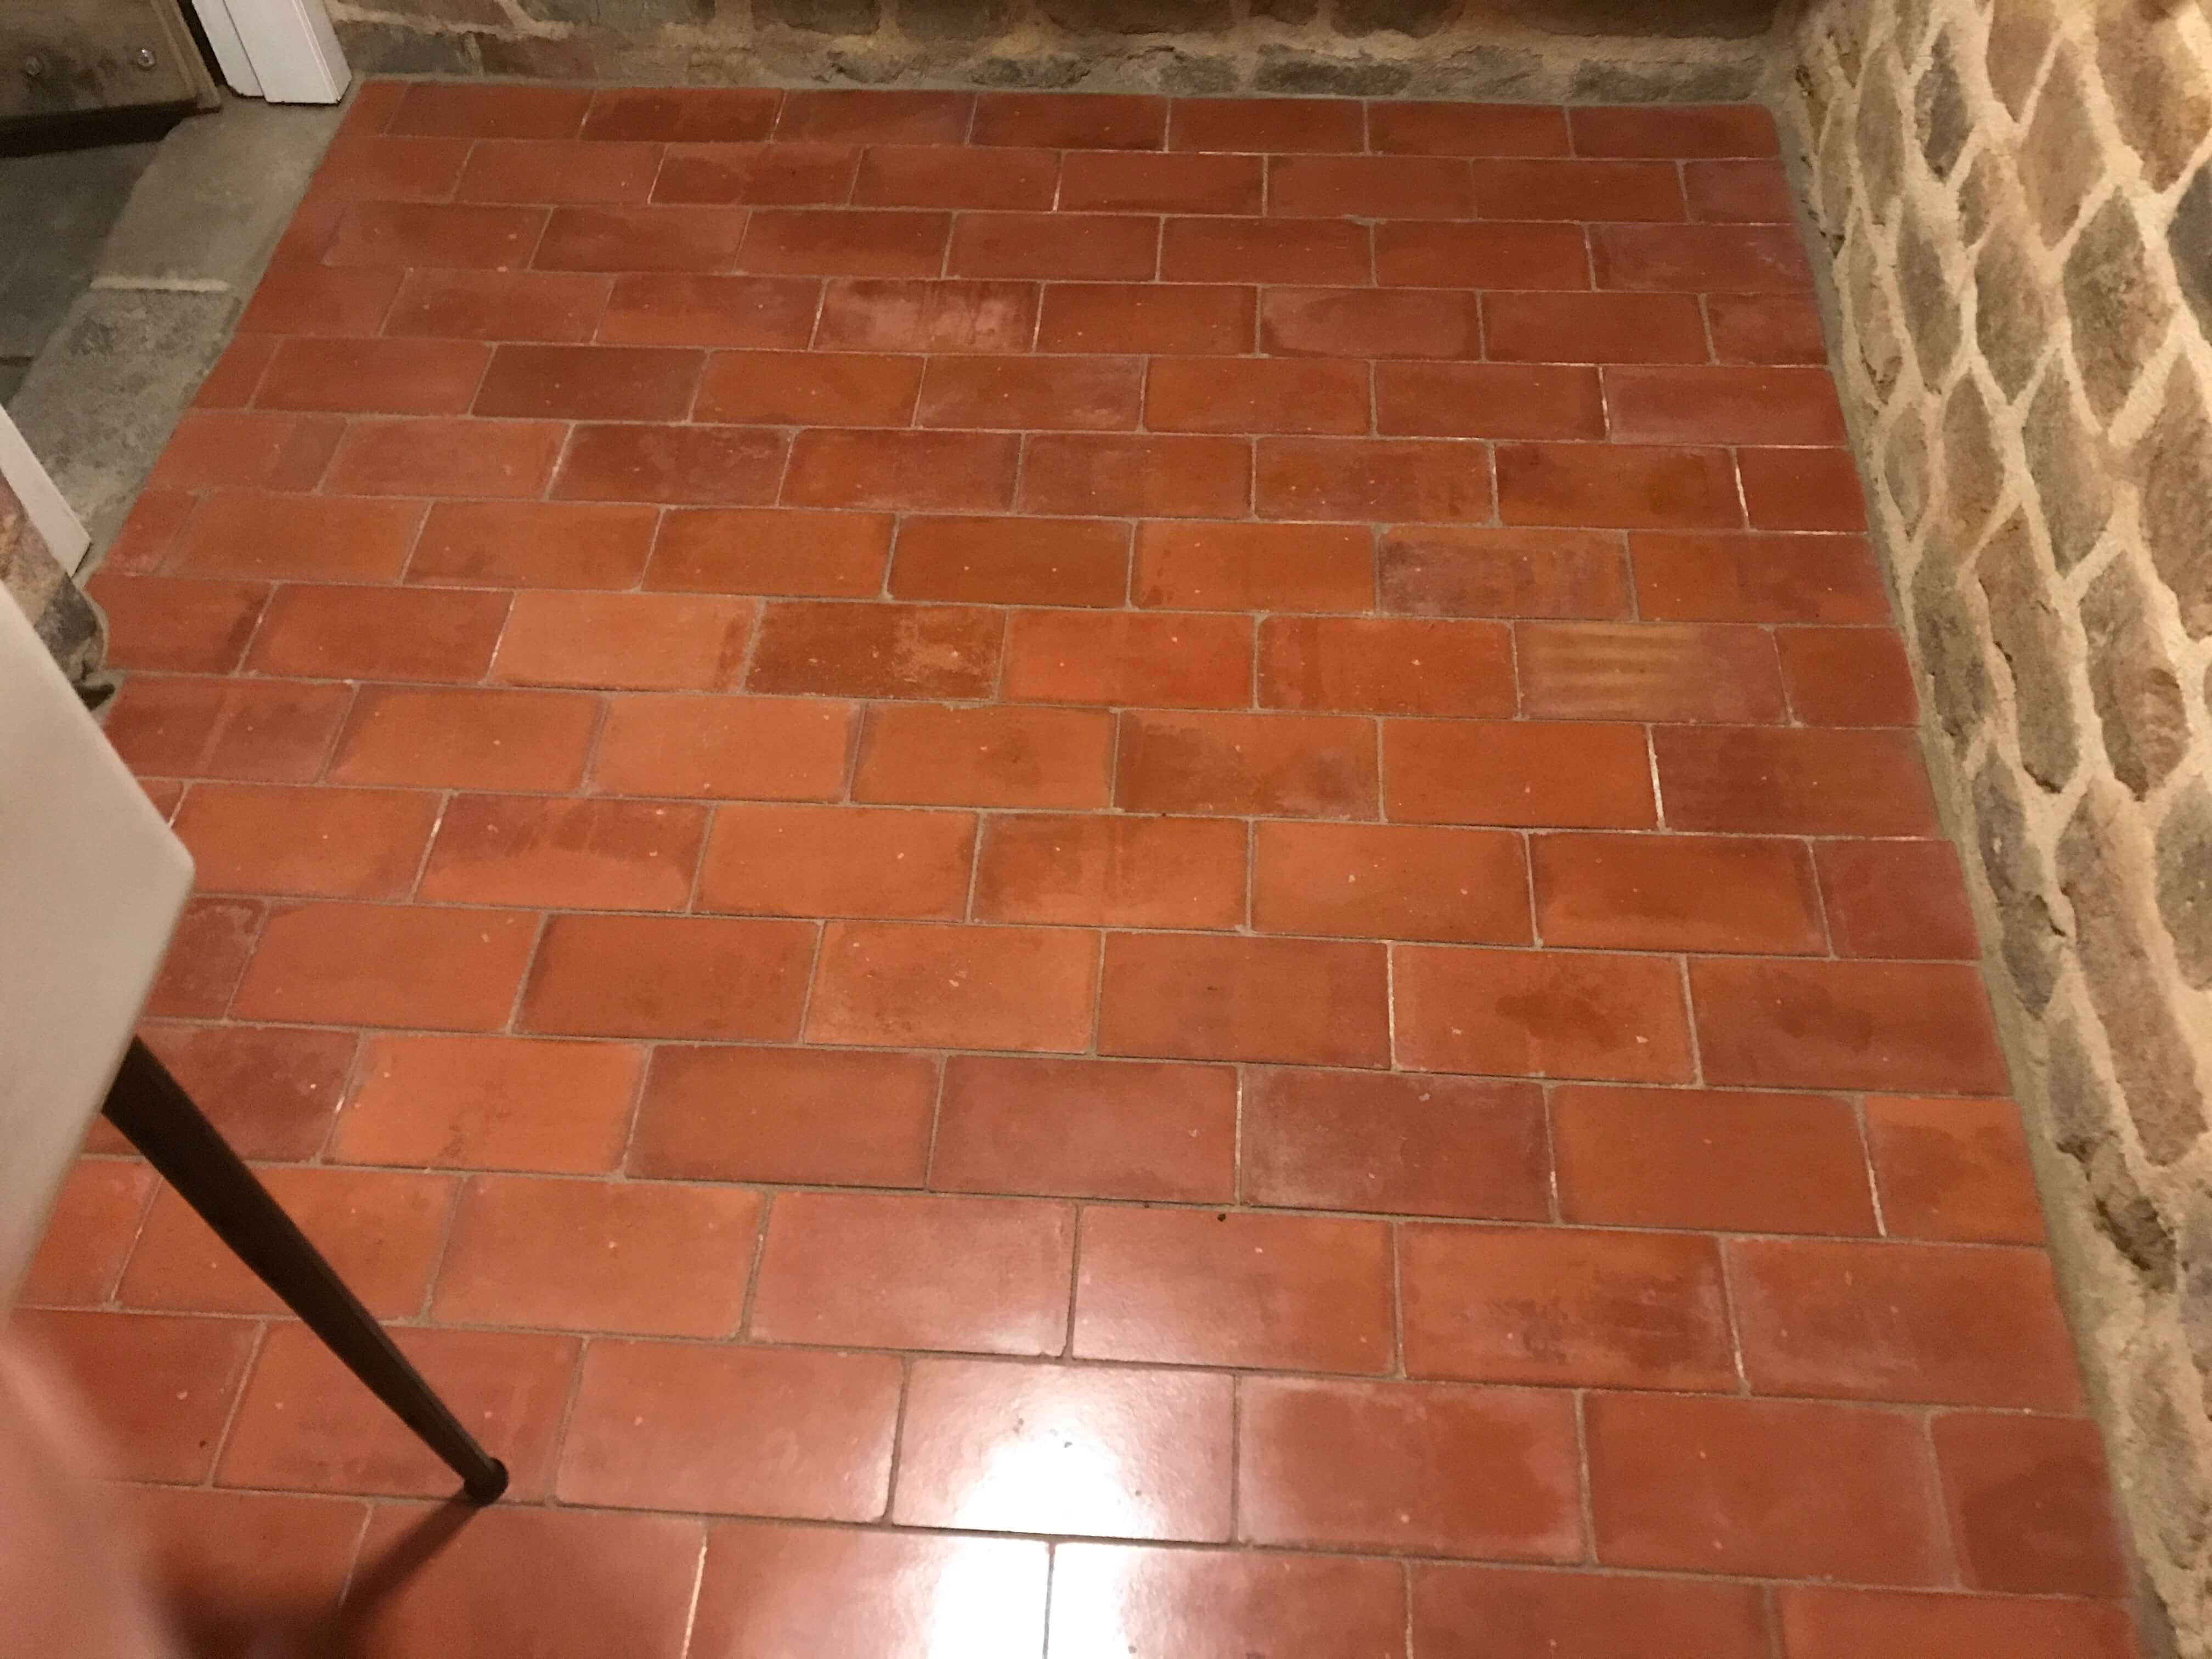 Quarry tiles floor tiles archives warwick reclamation quarry tiles floor tiles dailygadgetfo Image collections